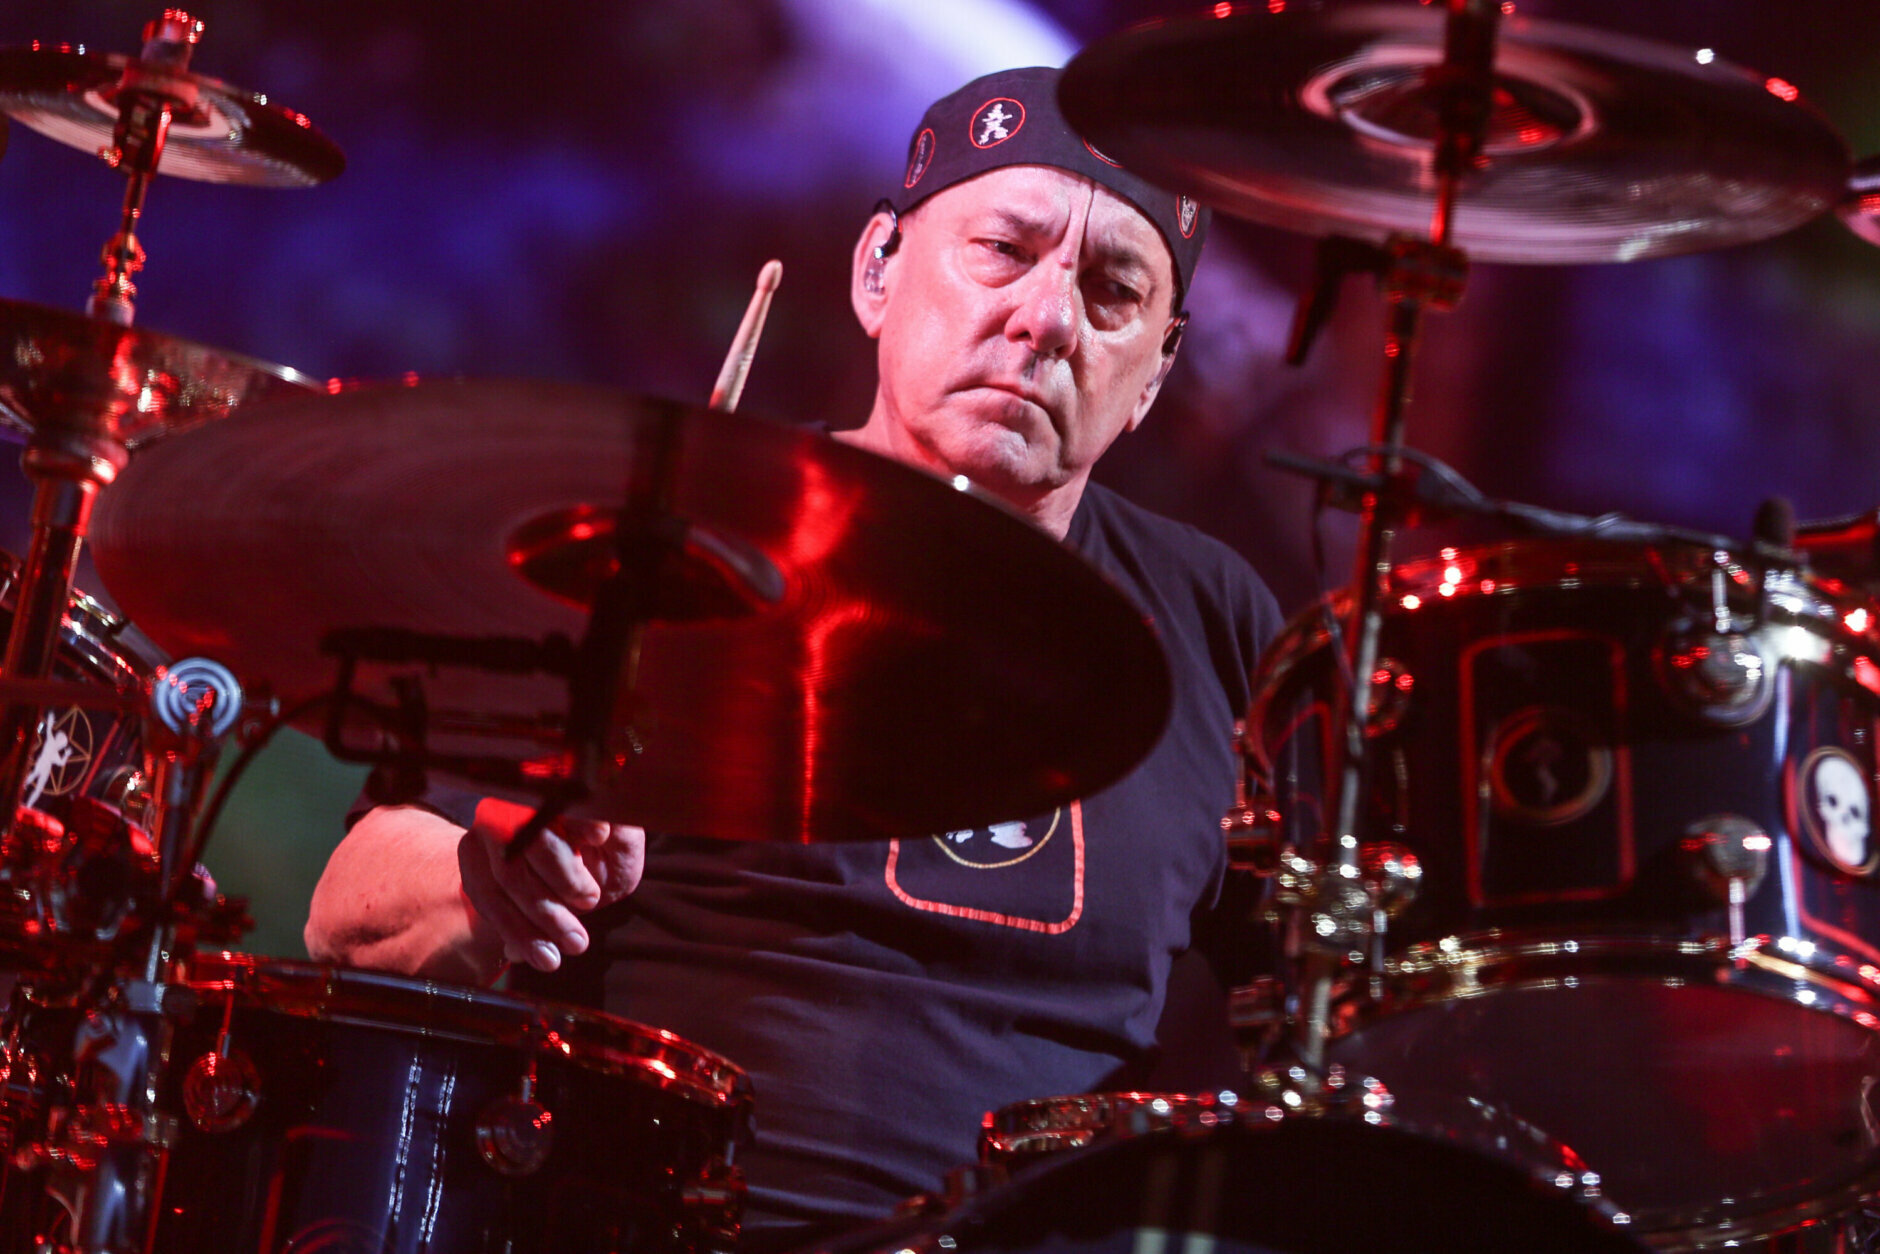 <p>Neil Peart, the renowned drummer and lyricist from the band Rush, has died. His rep Elliot Mintz said in a statement Friday that he died at his home Tuesday, Jan. 7, 2020 in Santa Monica, Calif. He was 67. (Photo by Rich Fury/Invision/AP, File)</p>